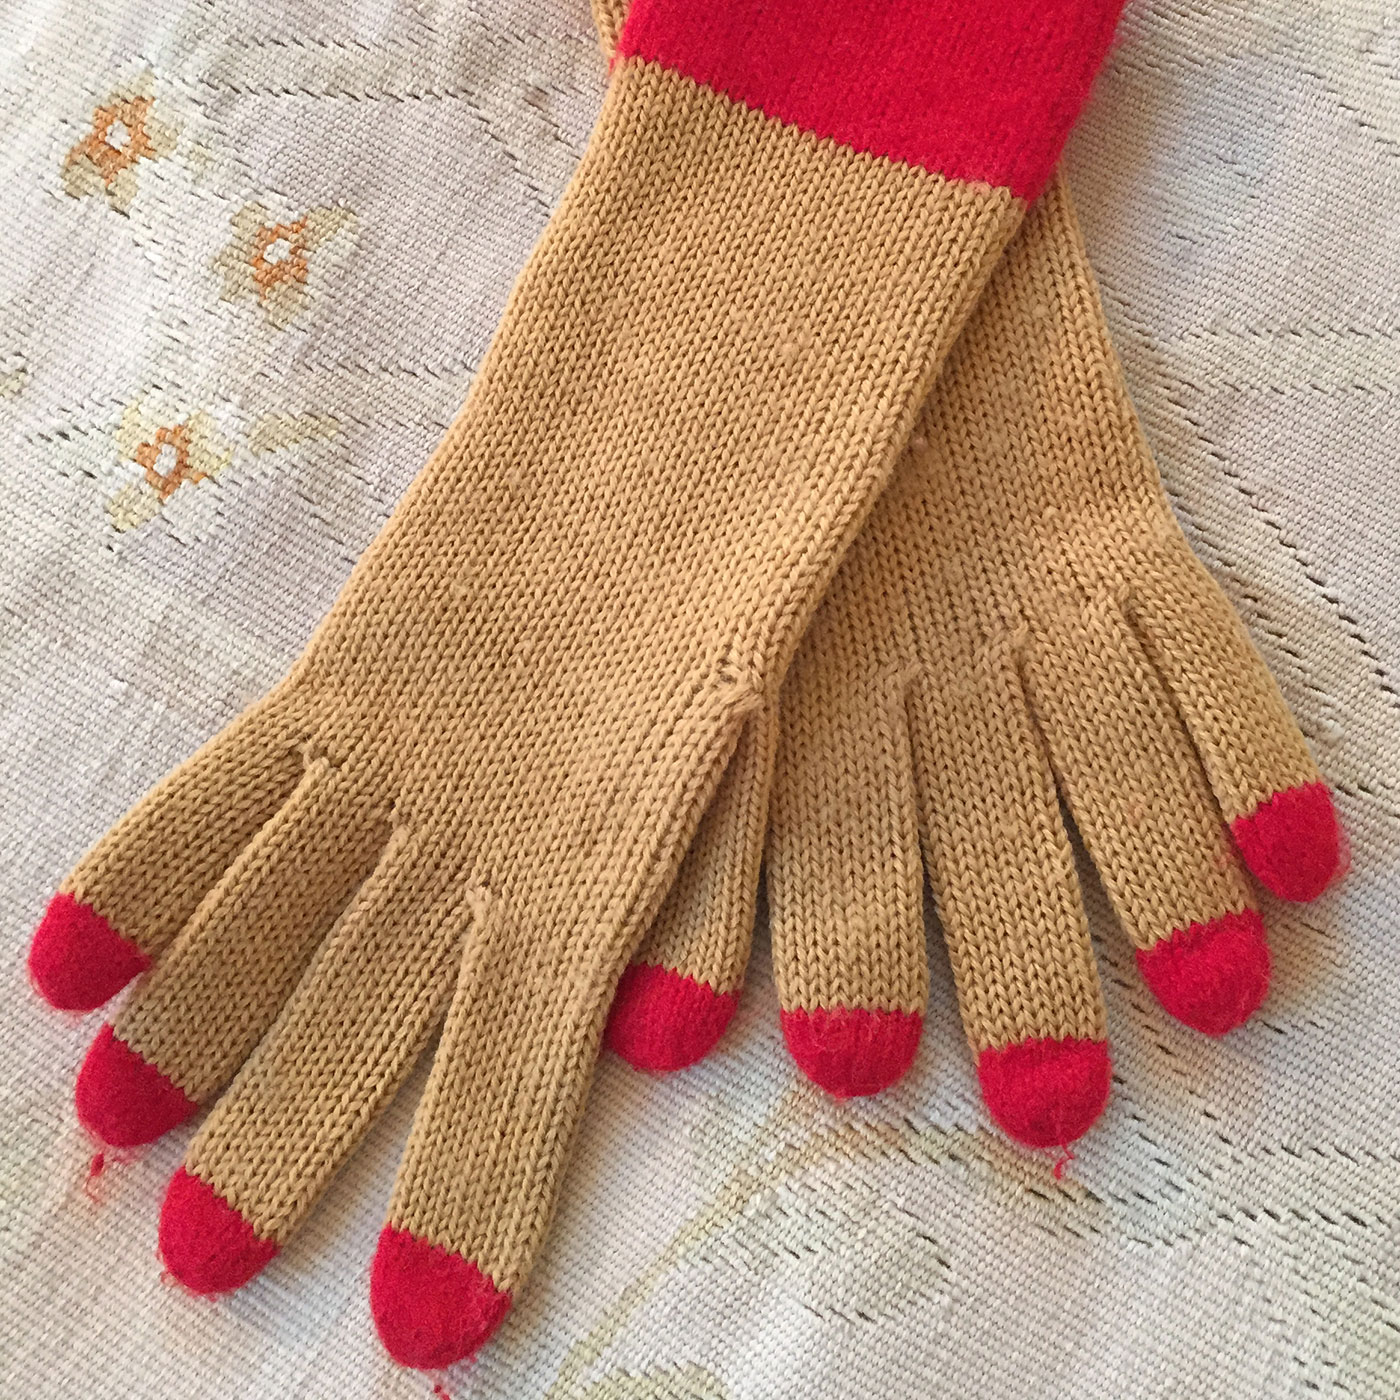 Geoffrey Beene spring wool gloves with red nail detail.